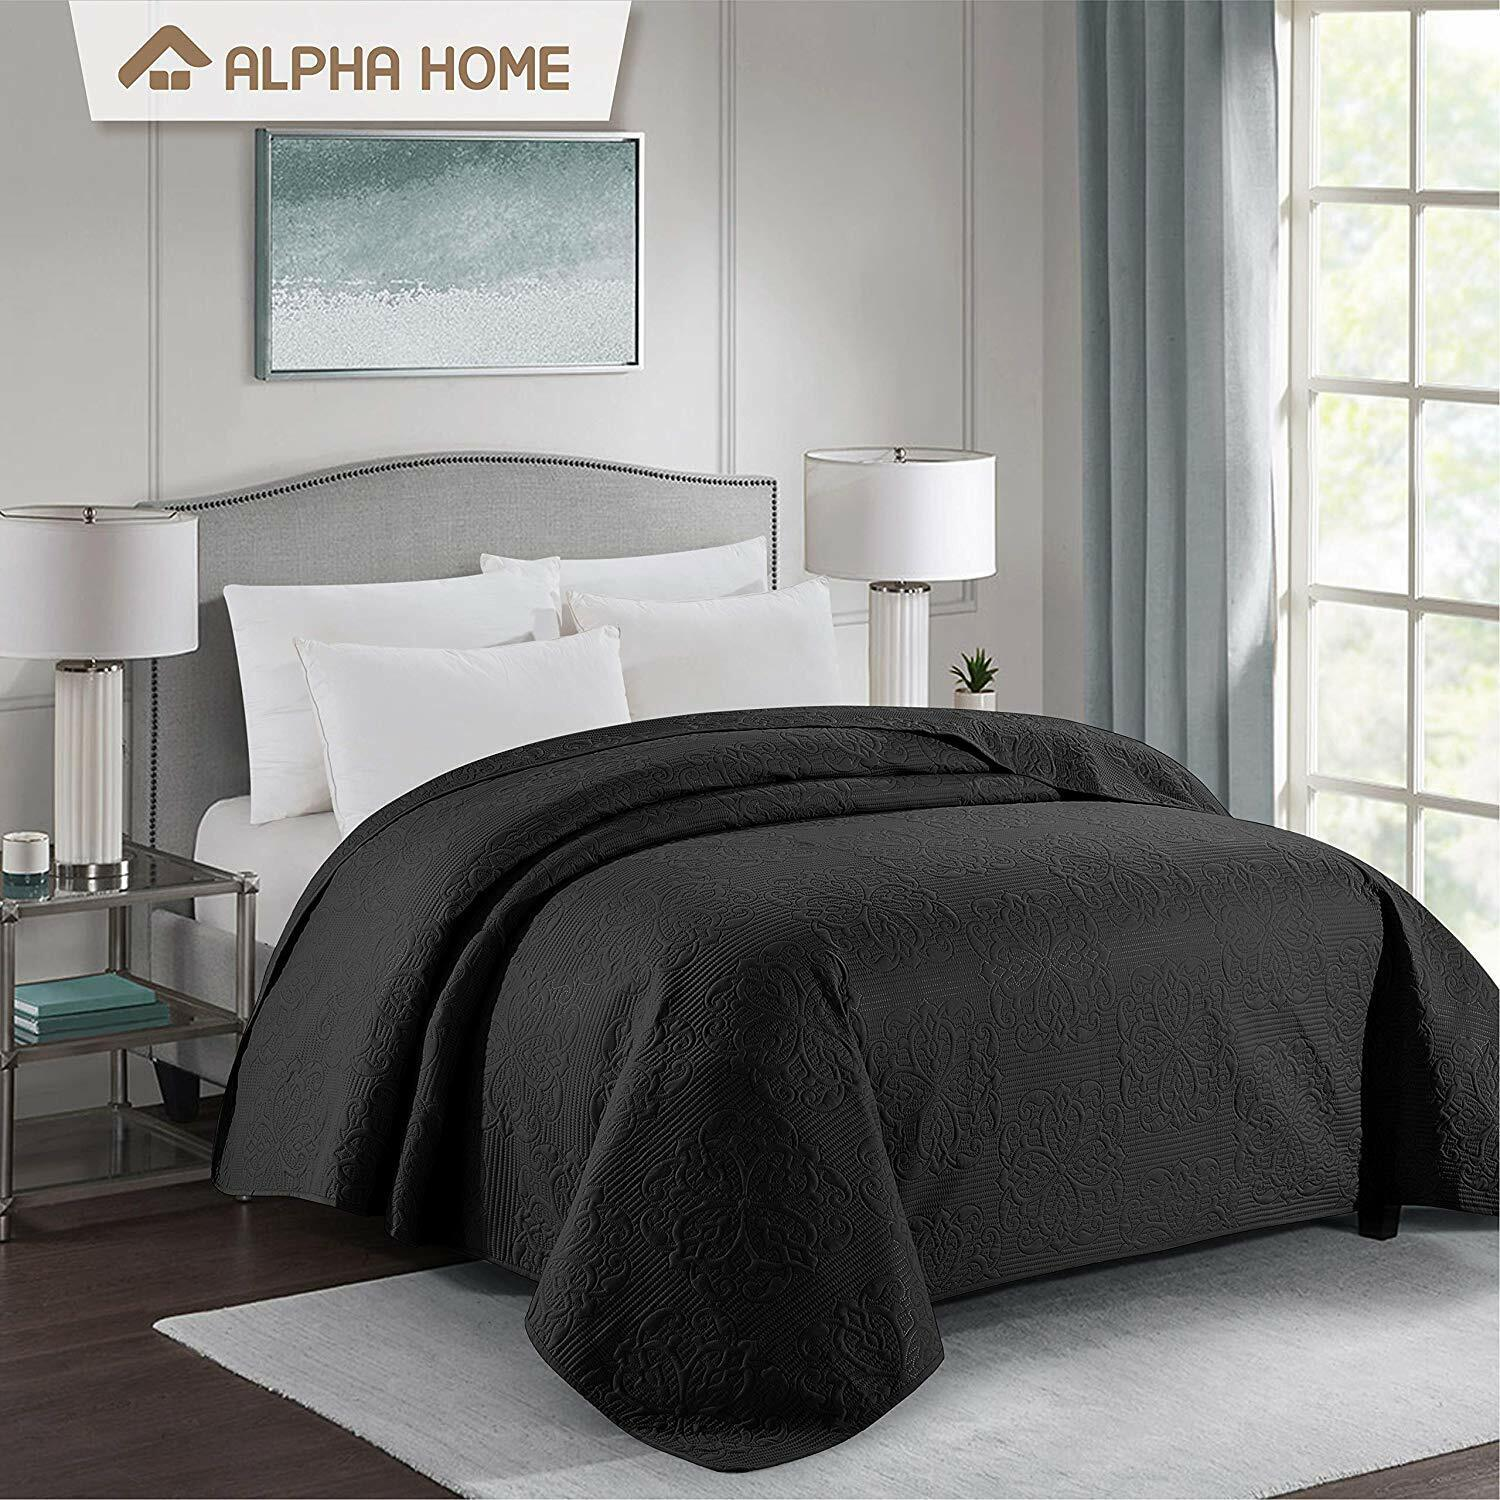 ALPHA HOME Bed Quilt Bedspread and Coverlet